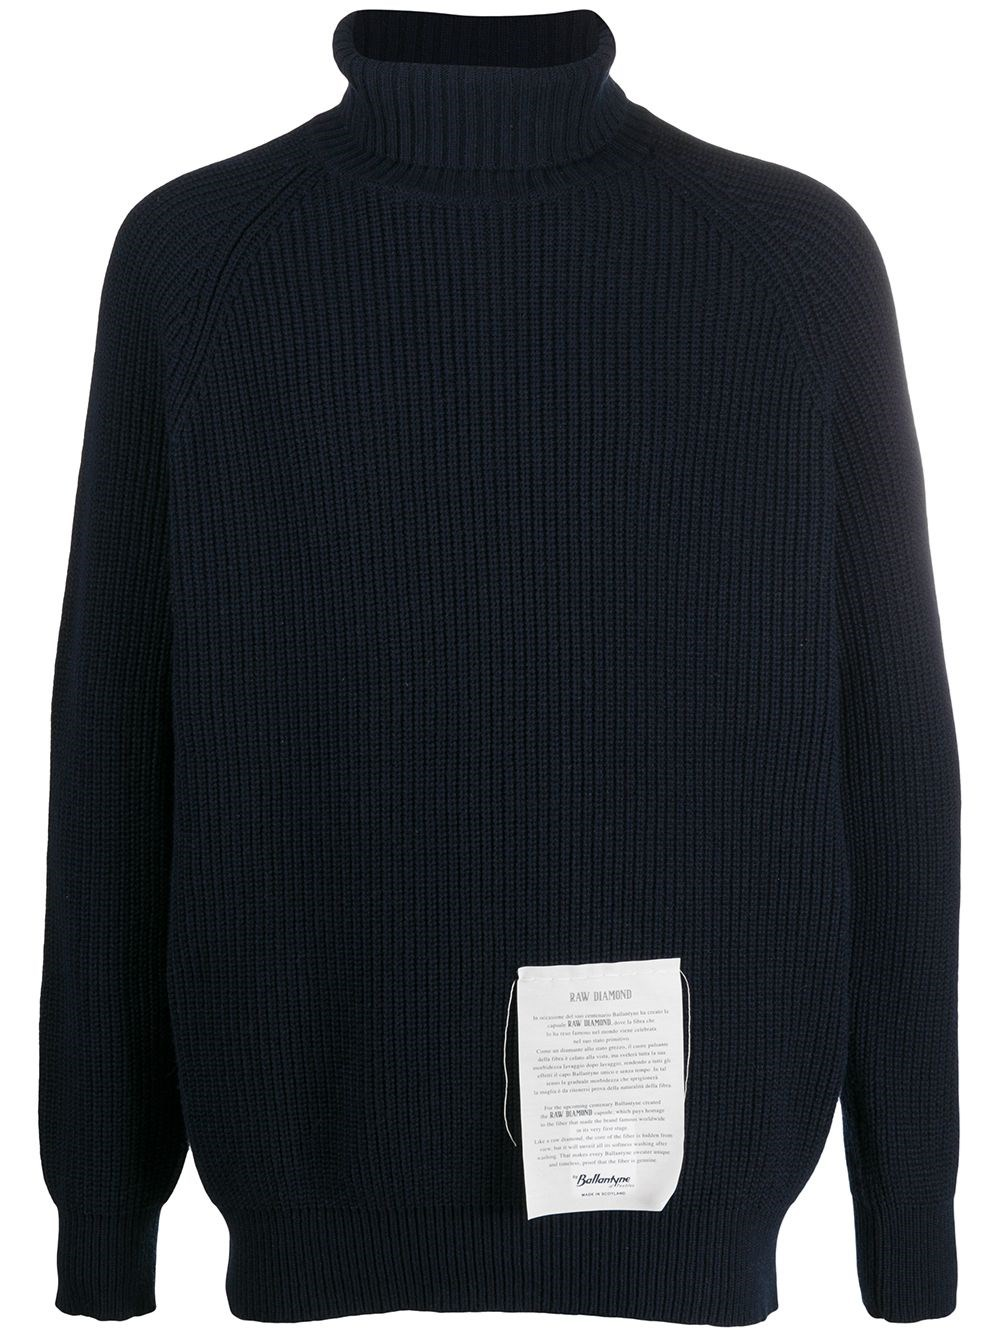 RAW DIAMOND BY BALLANTYNE Ribbed Roll Neck Jumper